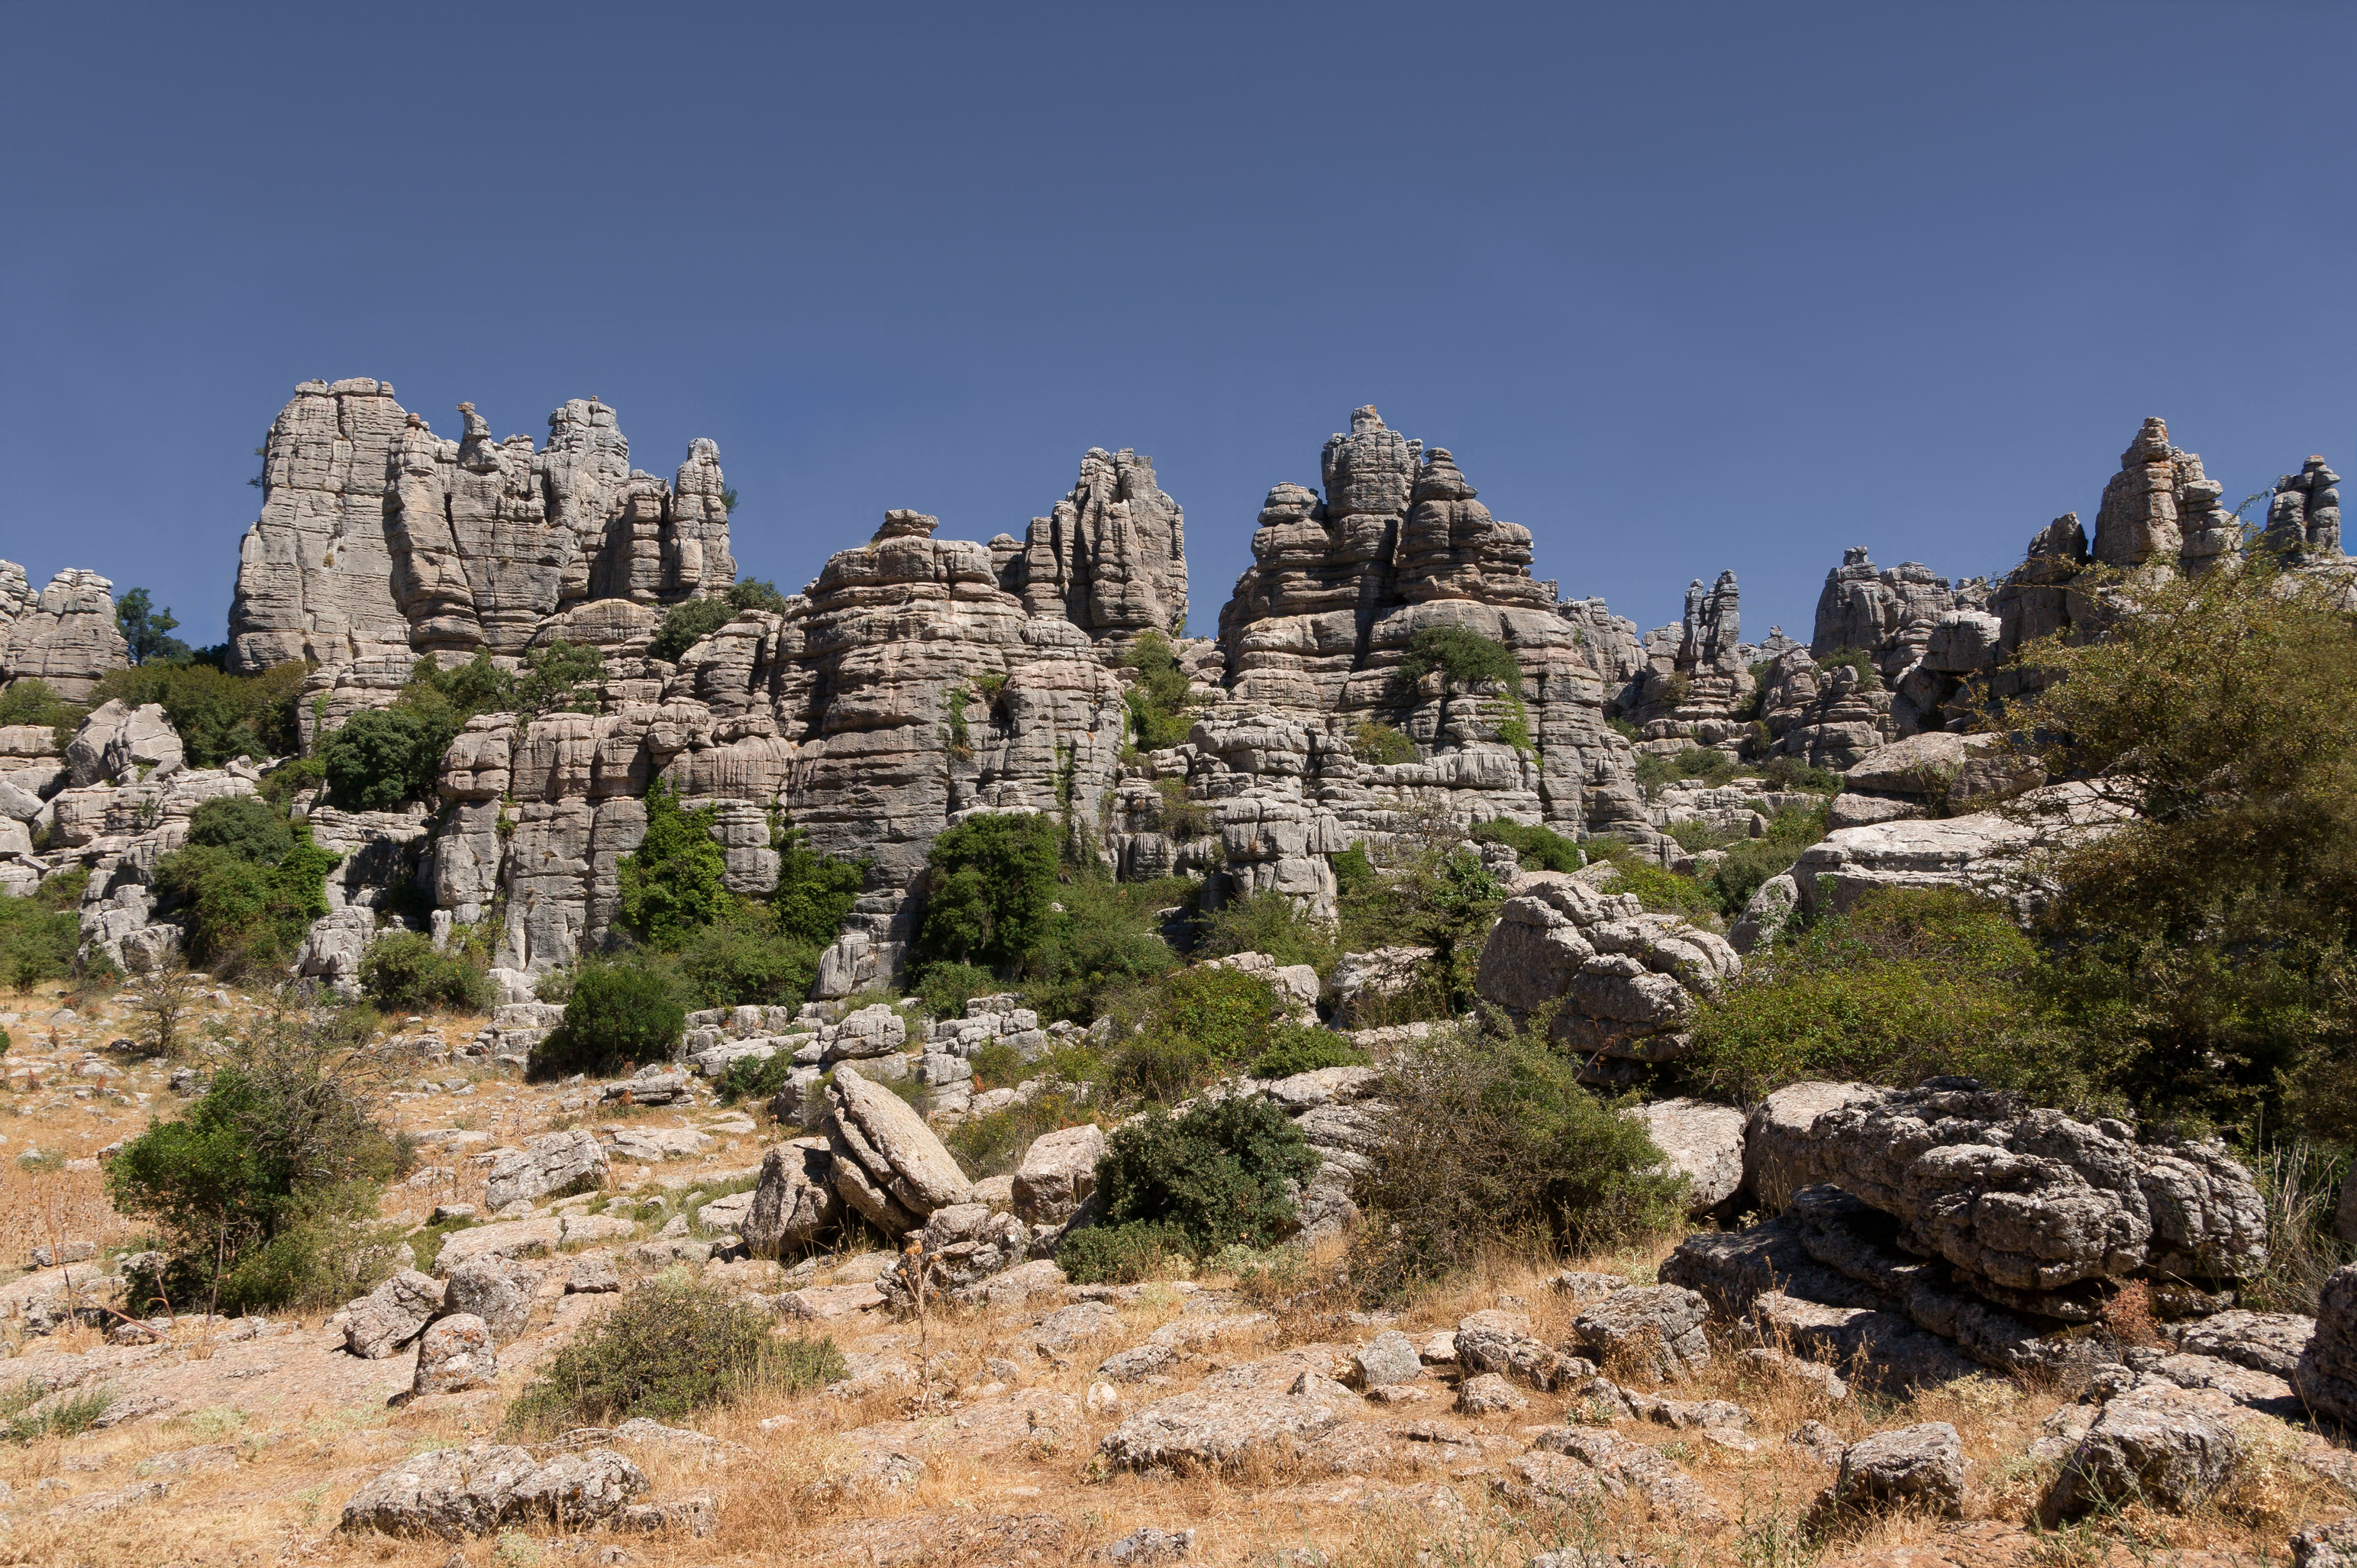 Antequera Spain  city images : Description El Torcal de Antequera karst scenery Andalusia Spain